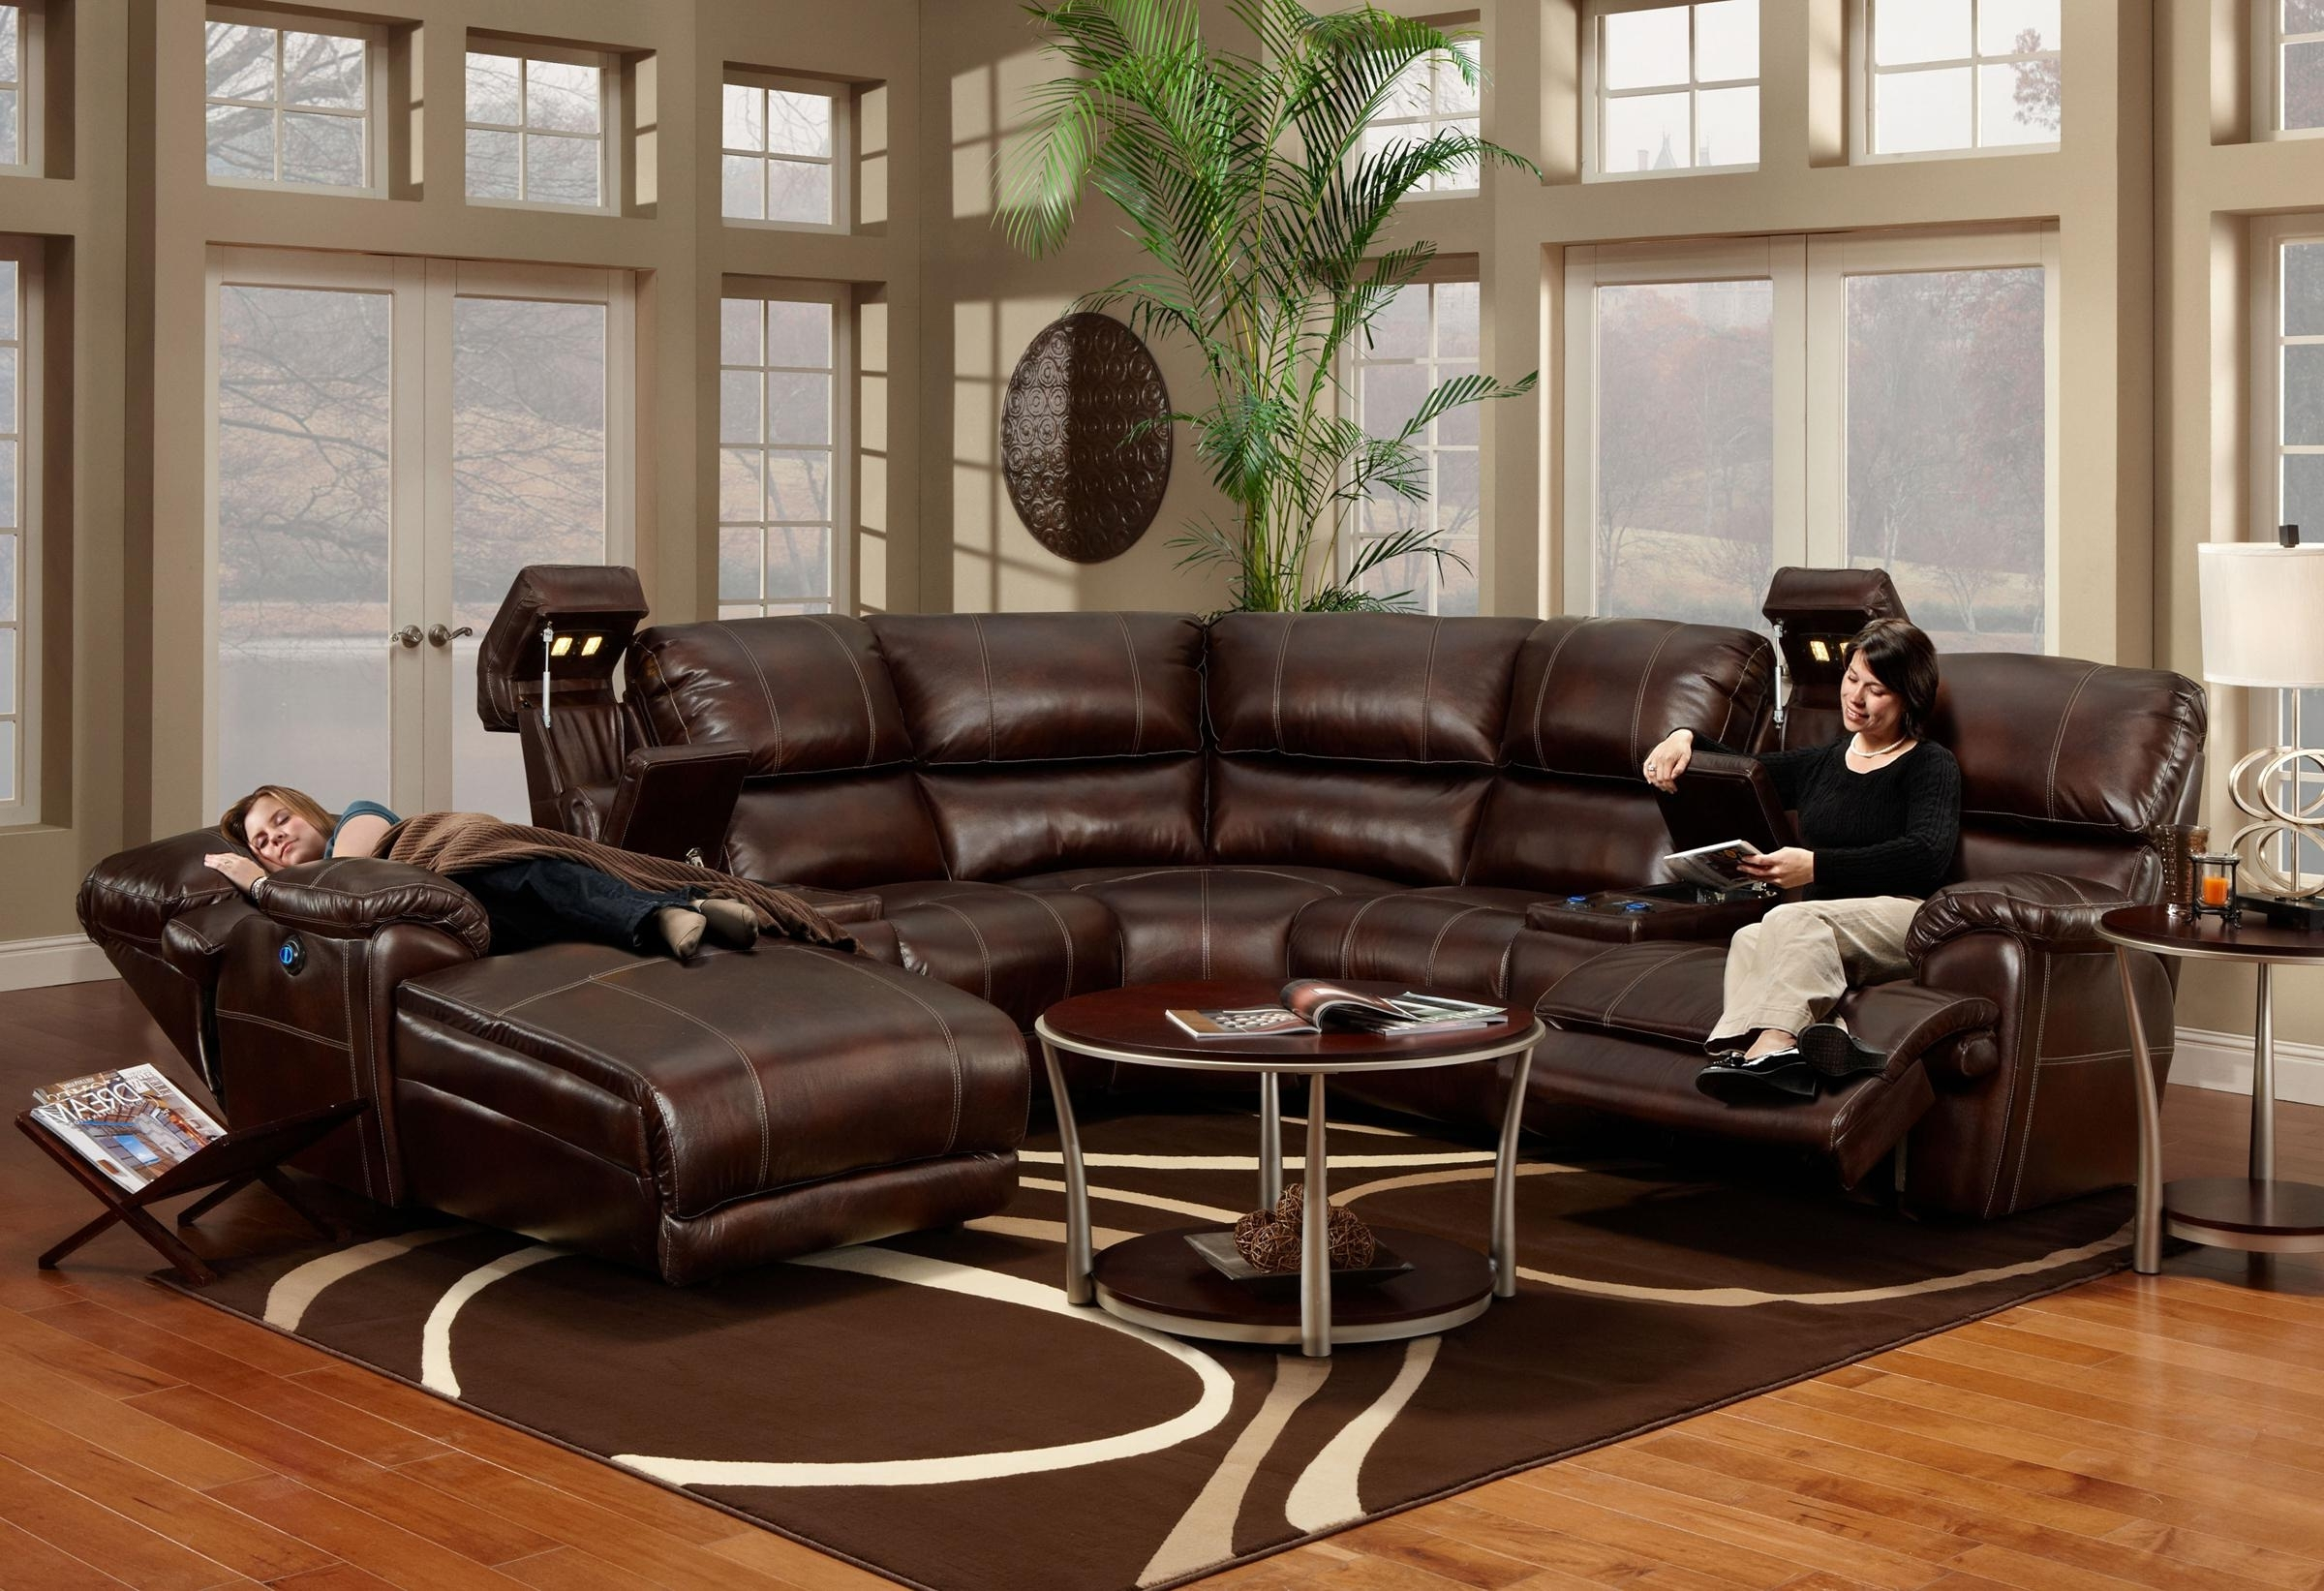 Franklin 572 Reclining Sectional Sofa With Chaise U2013 Ahfa U2013 Sofa Inside  Trendy St Cloud Mn